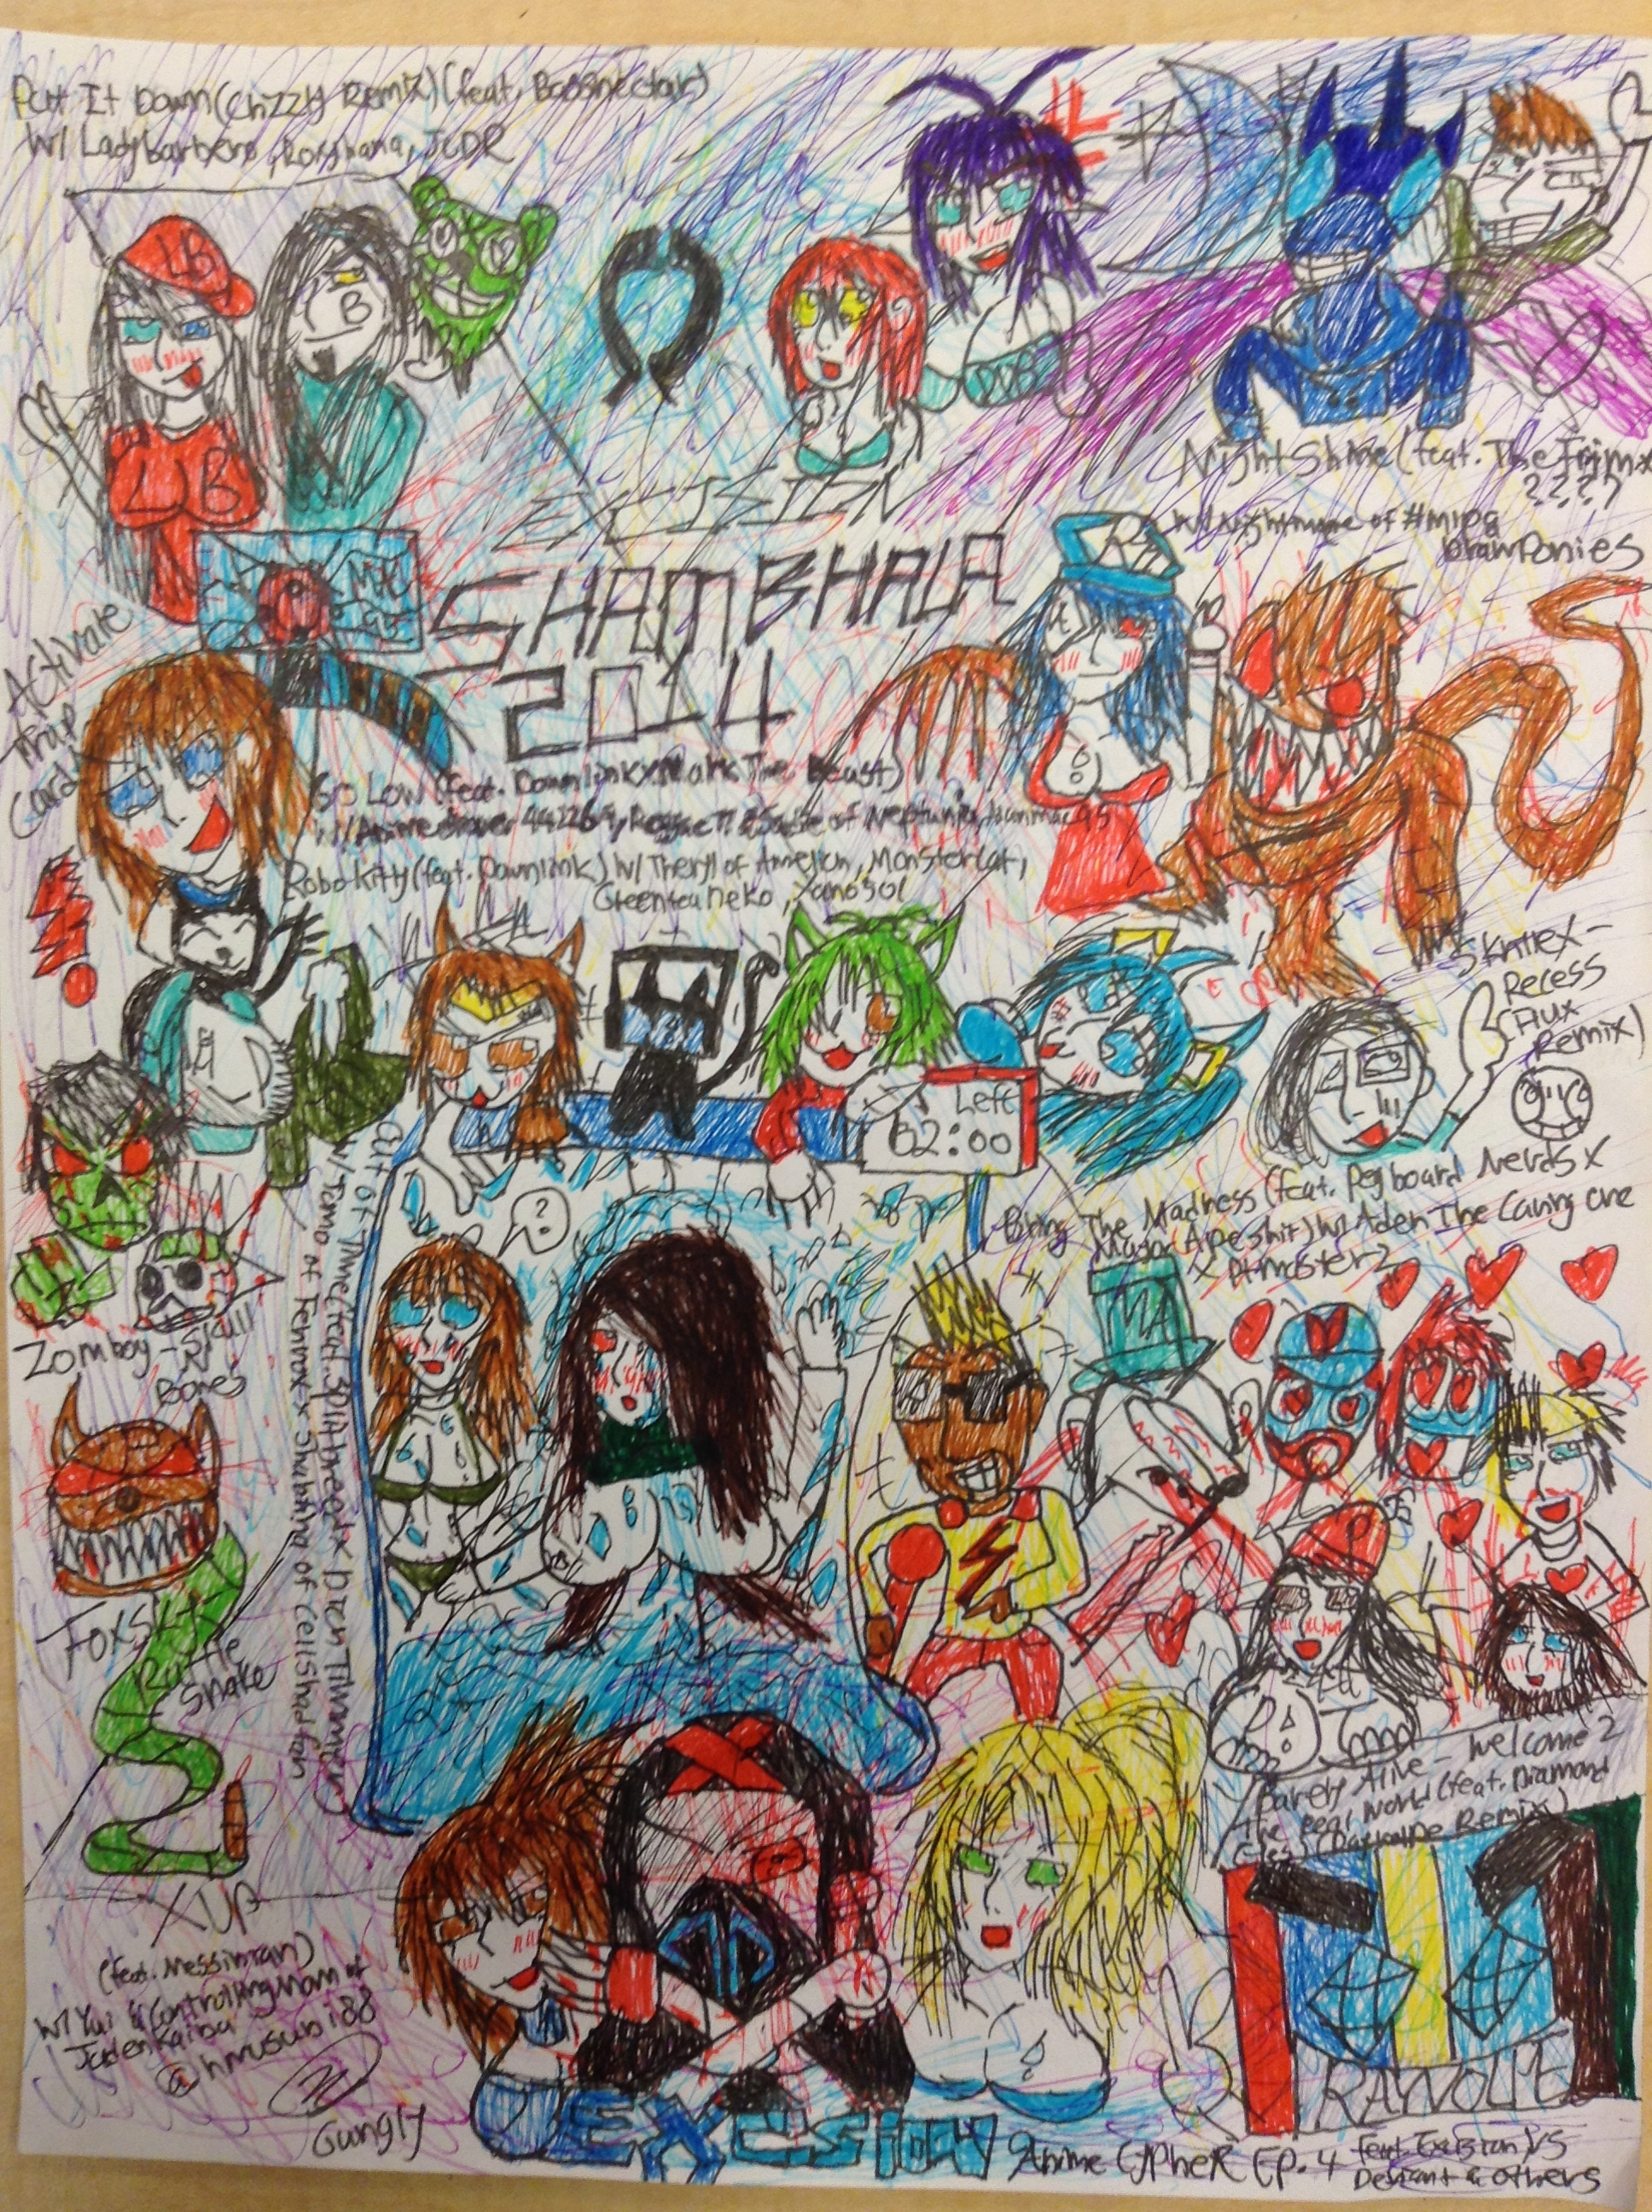 Anime Cypher 4 Shambhala 2014 Excision By Gungly On